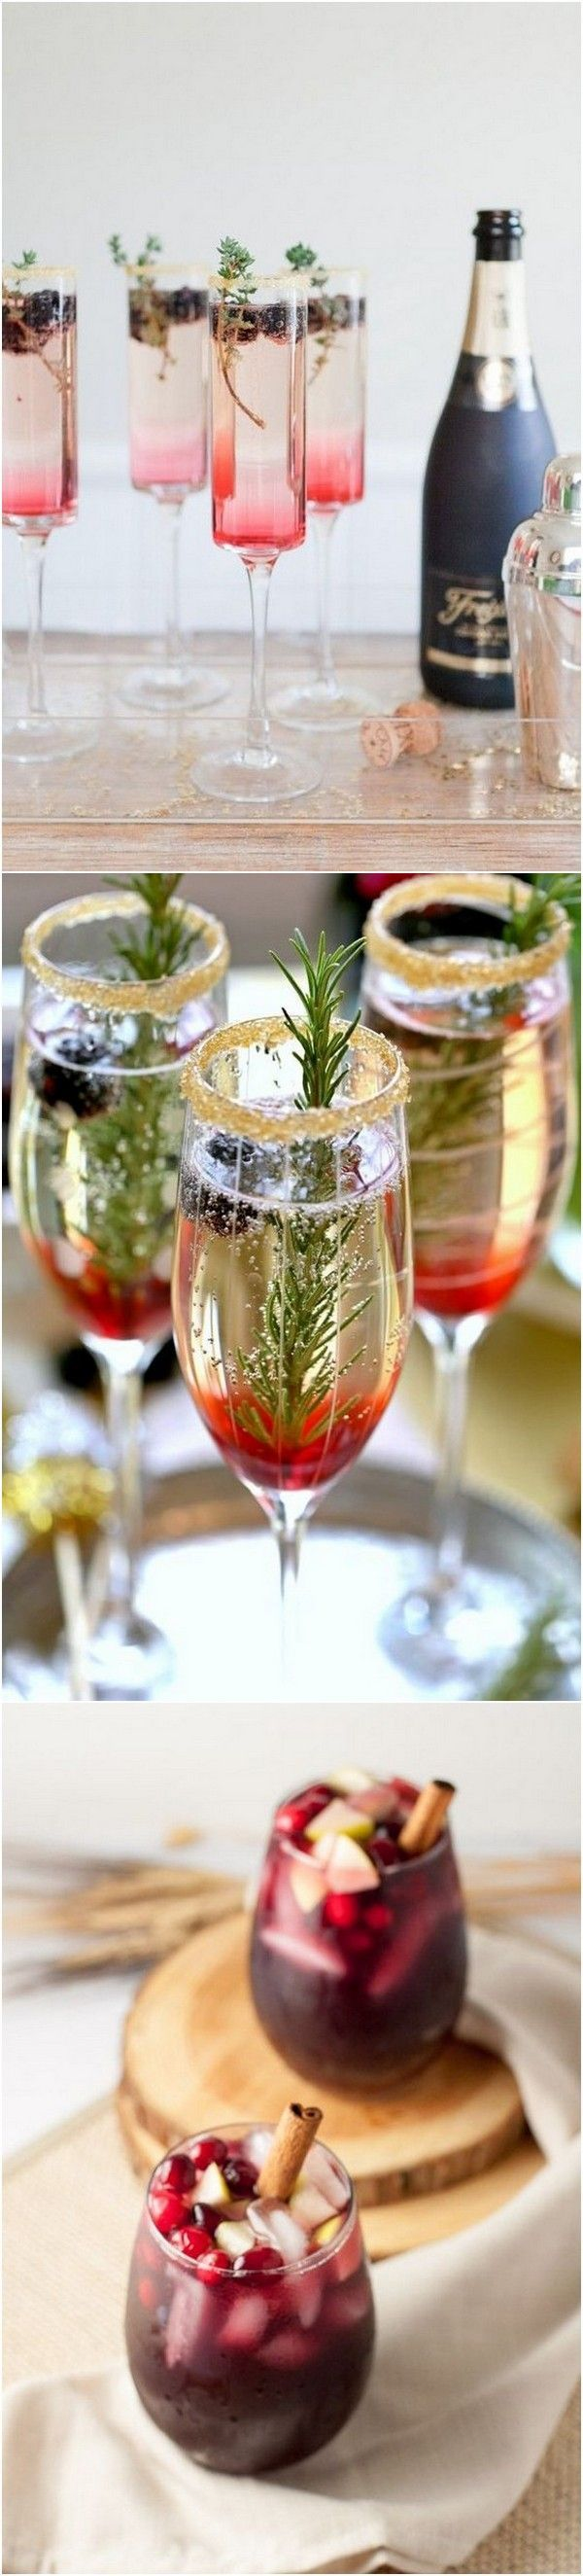 Signature drink ideas for weddings #wedding #weddingdrinks